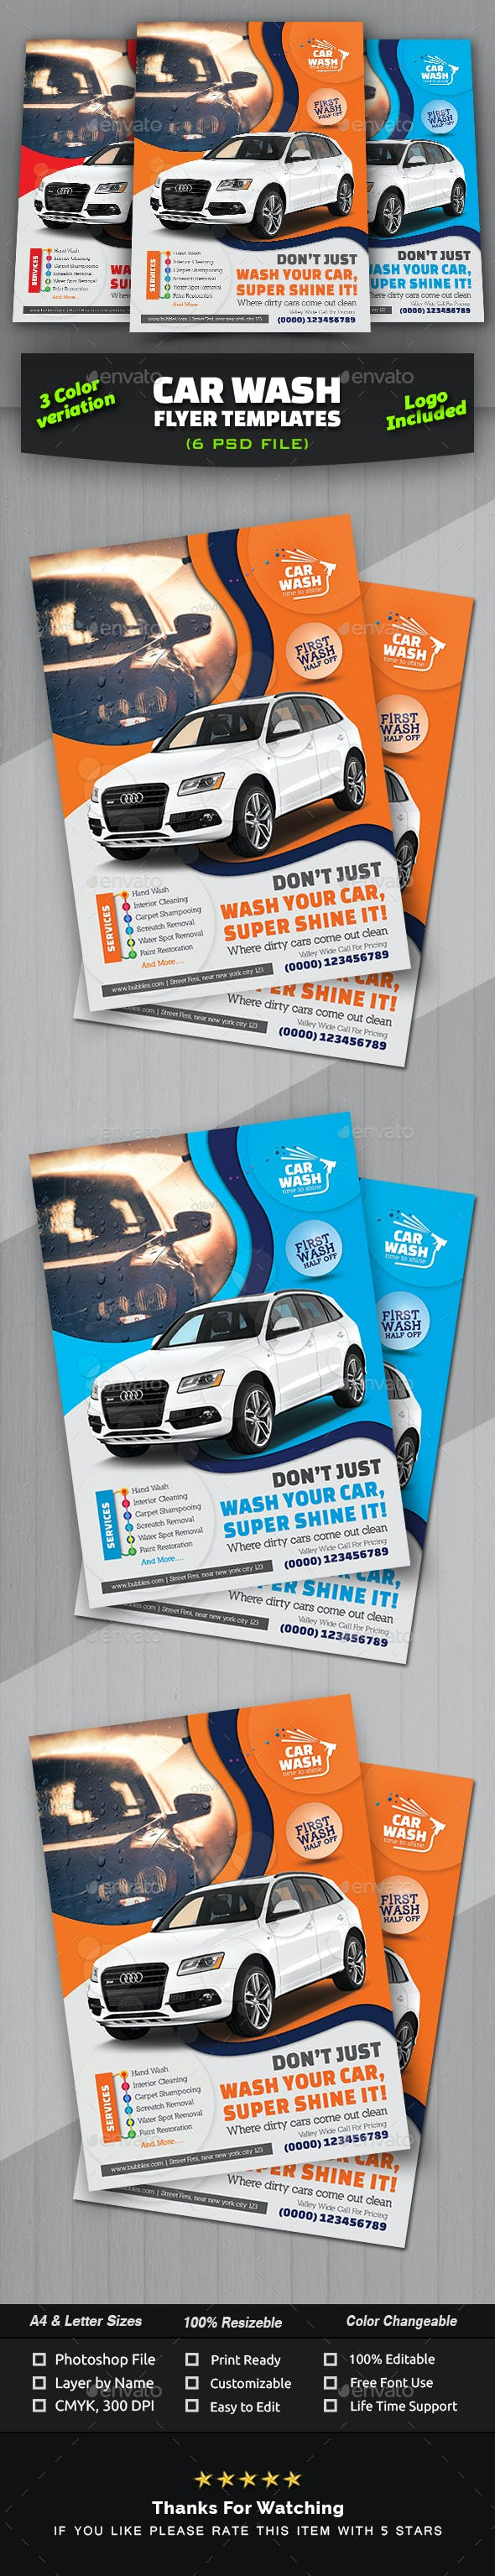 car wash flyer template commerce flyers